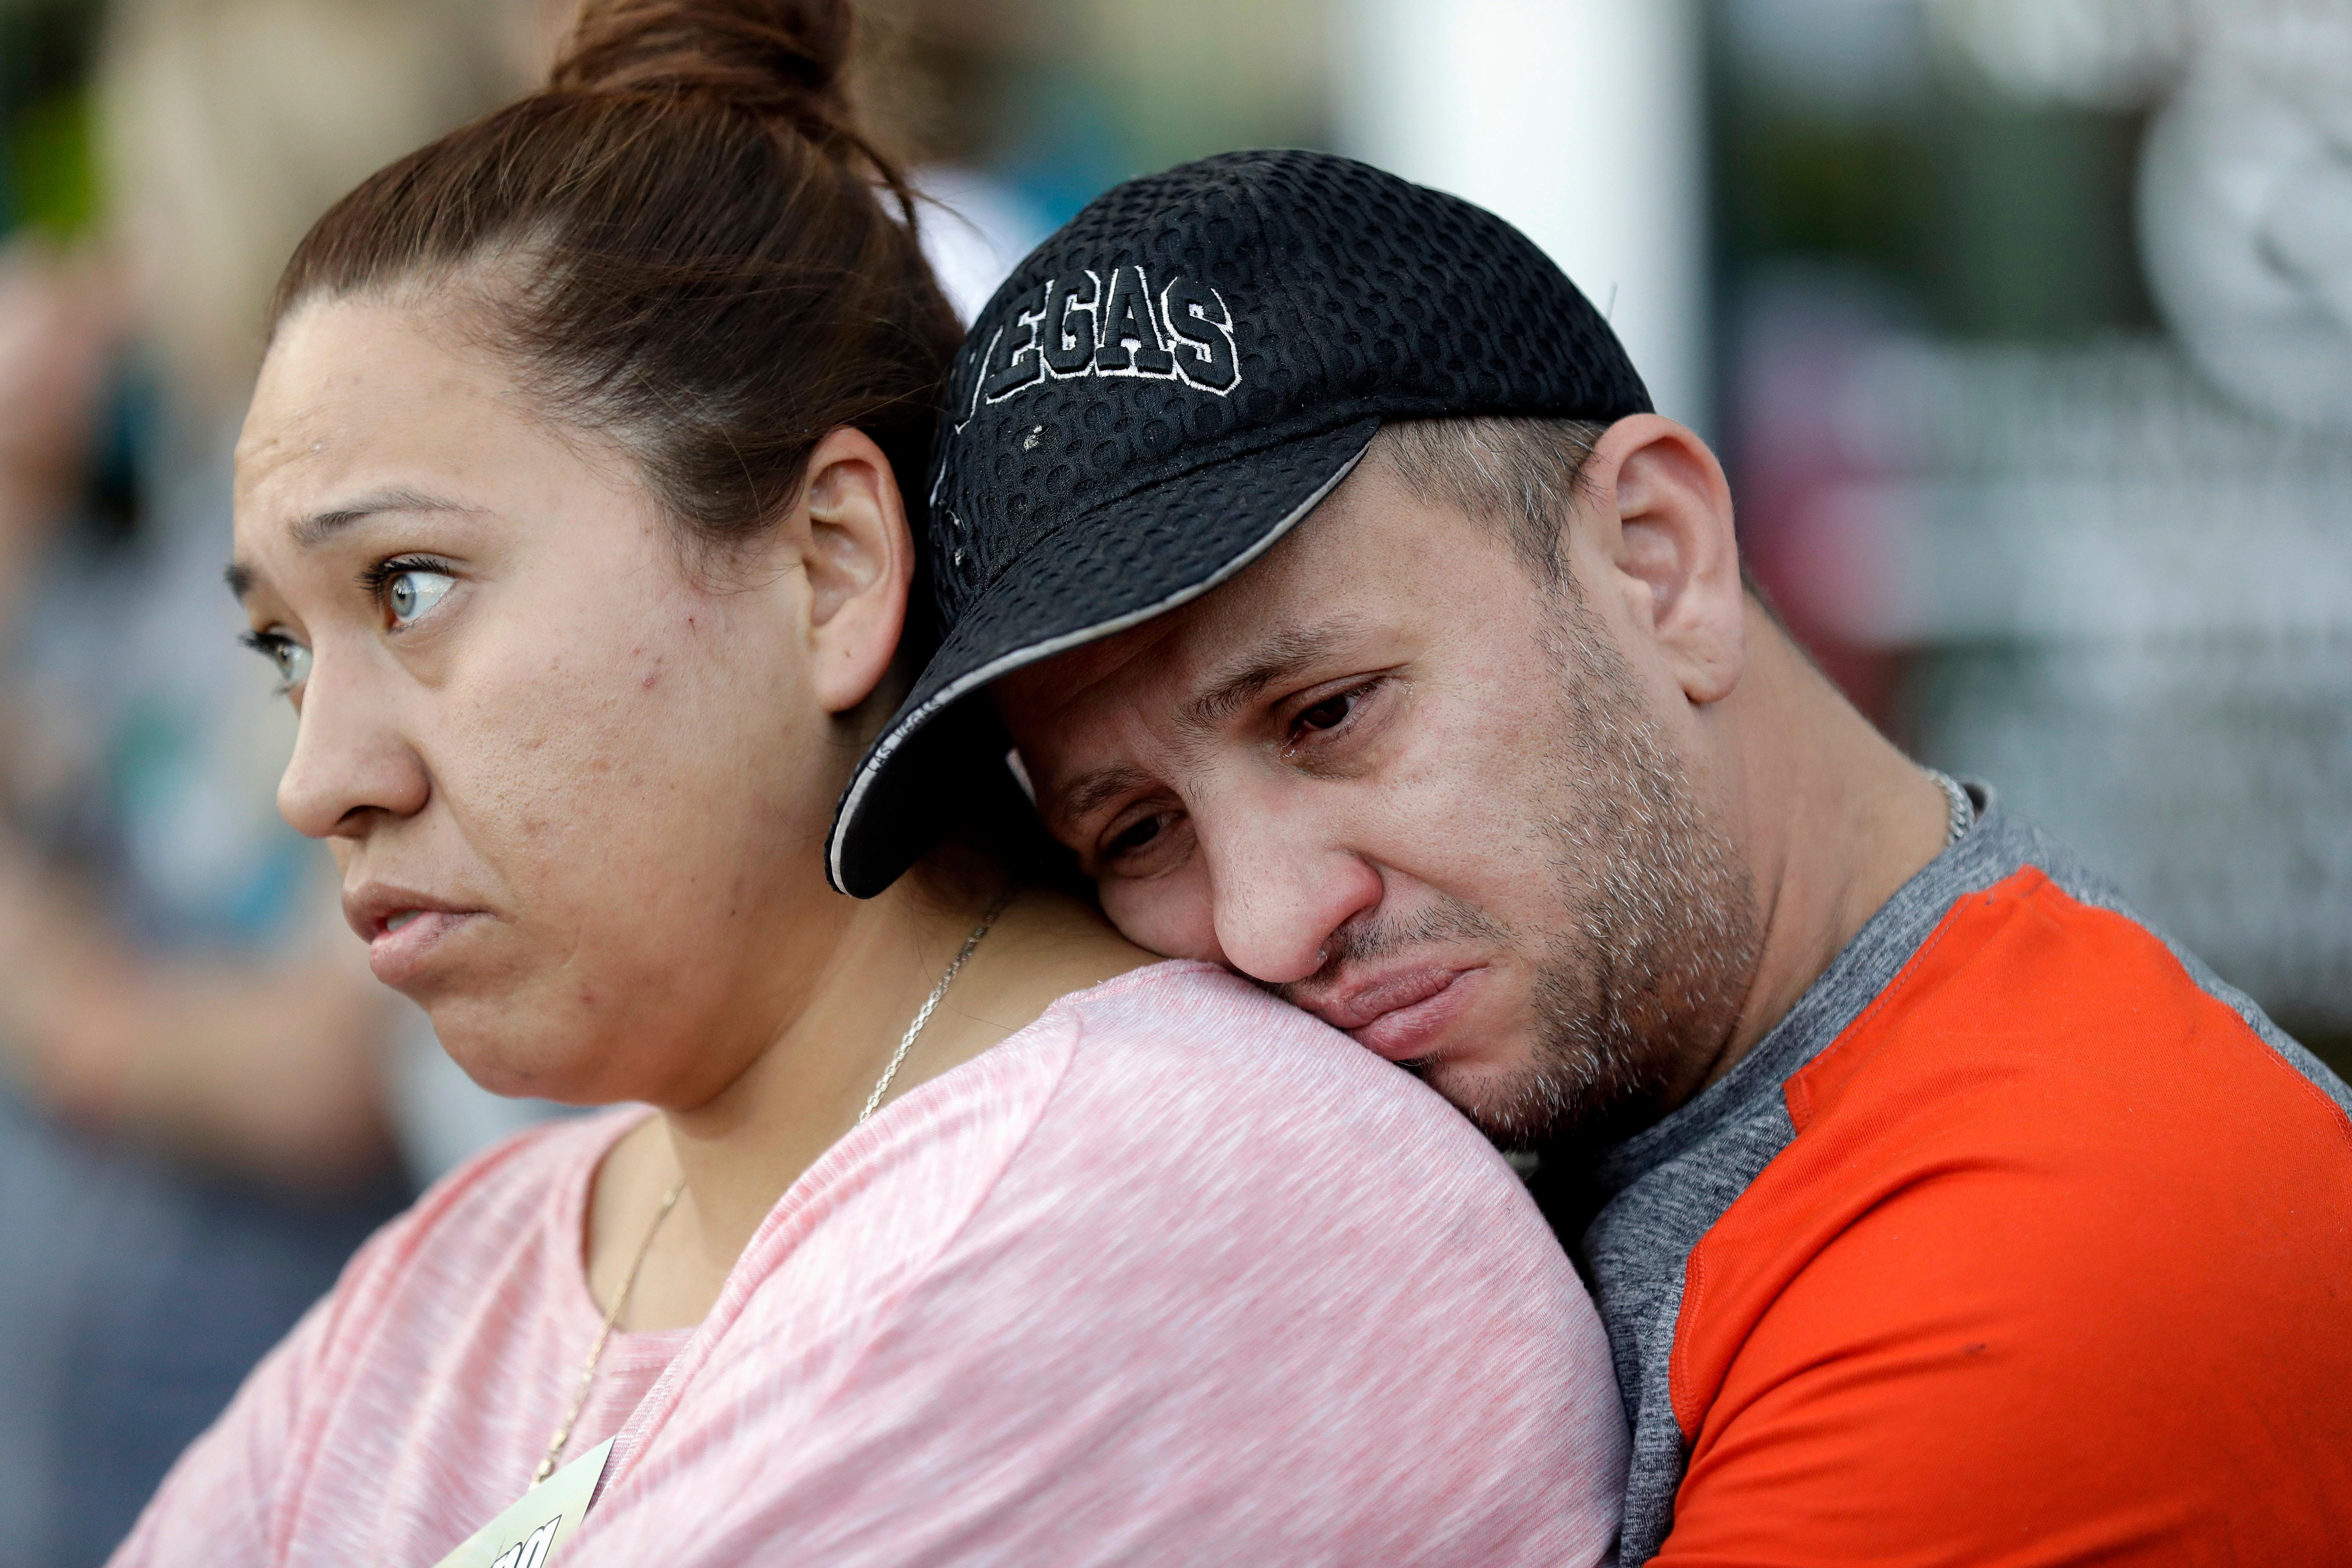 Rosa and Alan Duarte become emotional during a vigil at City Hall in Las Vegas, Monday, Oct. 2, 2017. The vigil was held in honor of the over 50 people killed and hundreds injured in a mass shooting at an outdoor music concert late Sunday. (AP Photo/Gregory Bull)